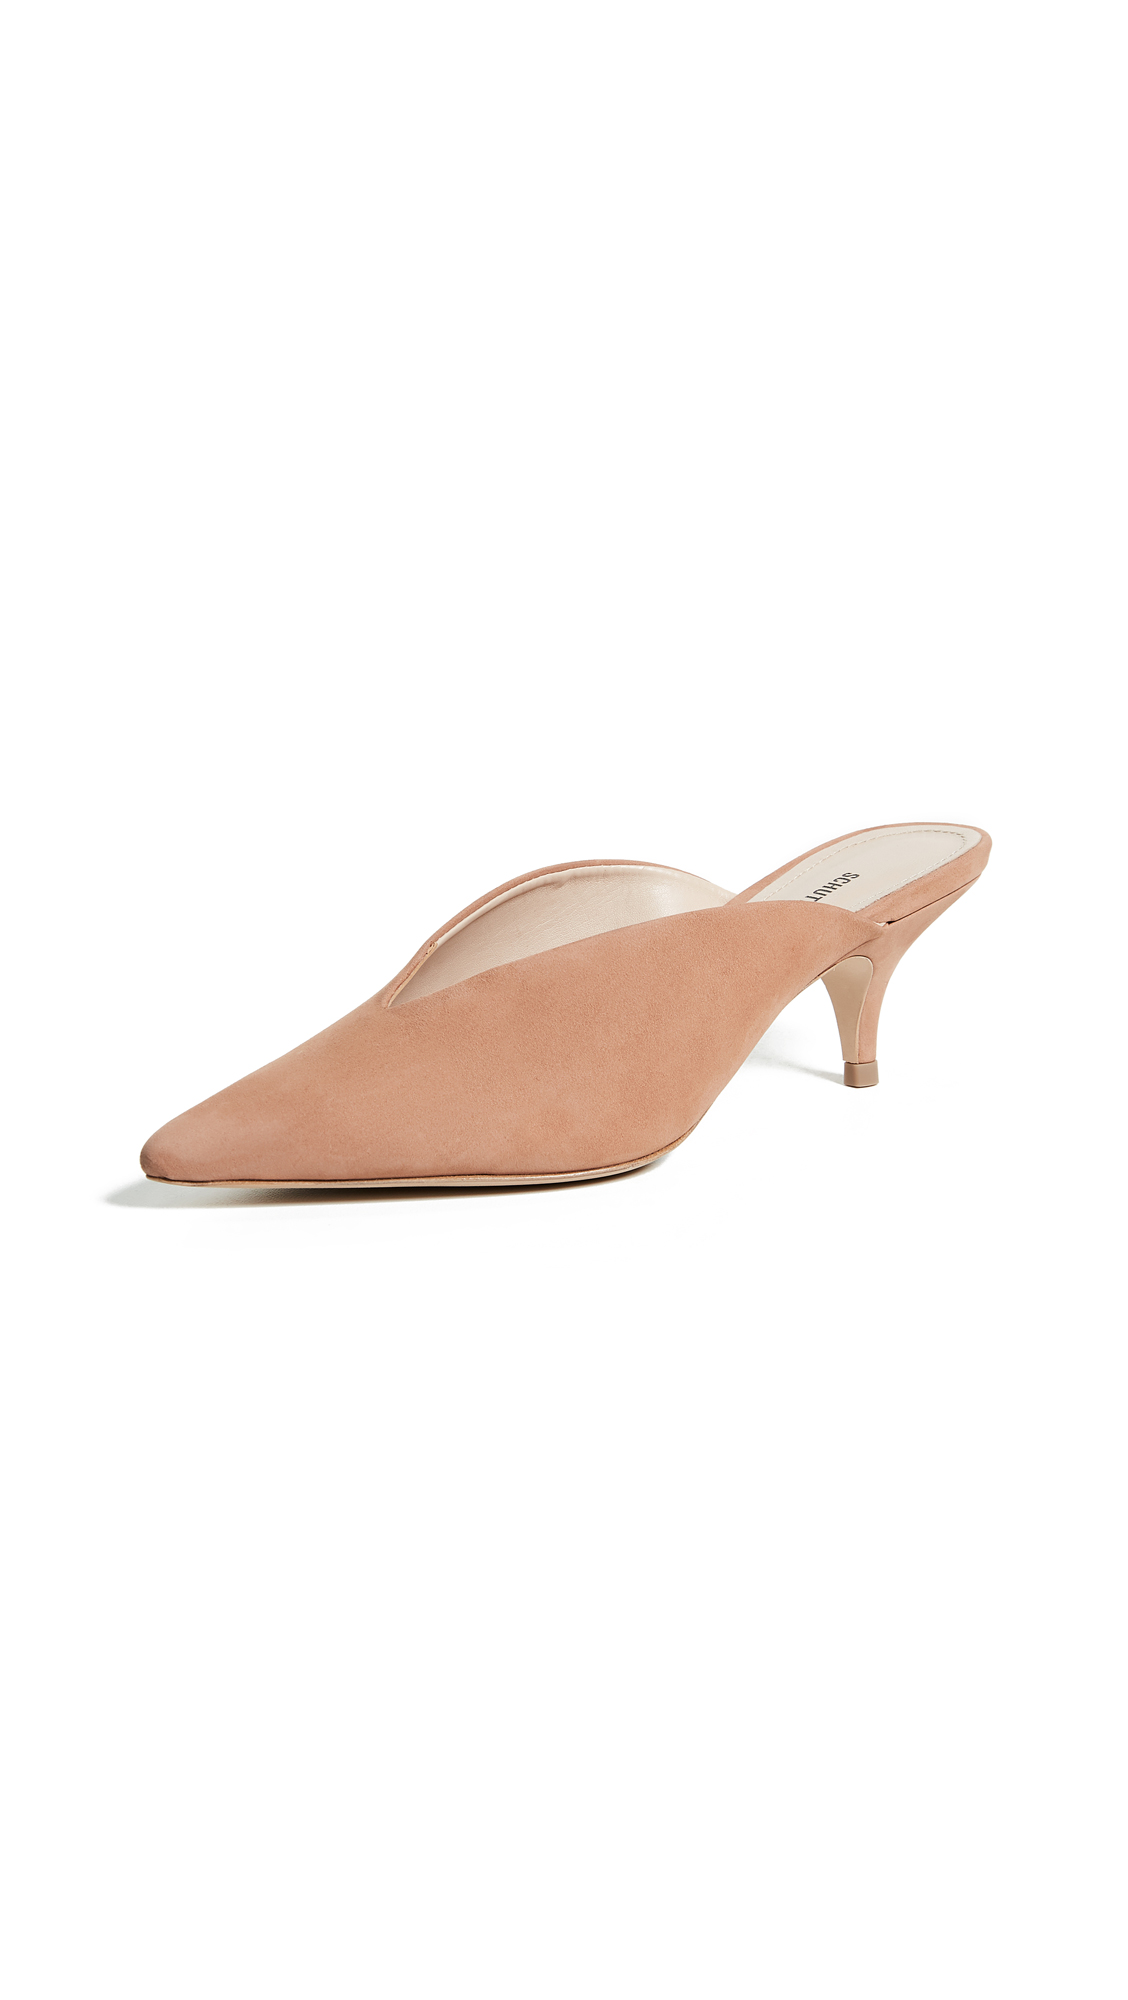 Schutz Alanna Point Toe Mules - Toasted Nut